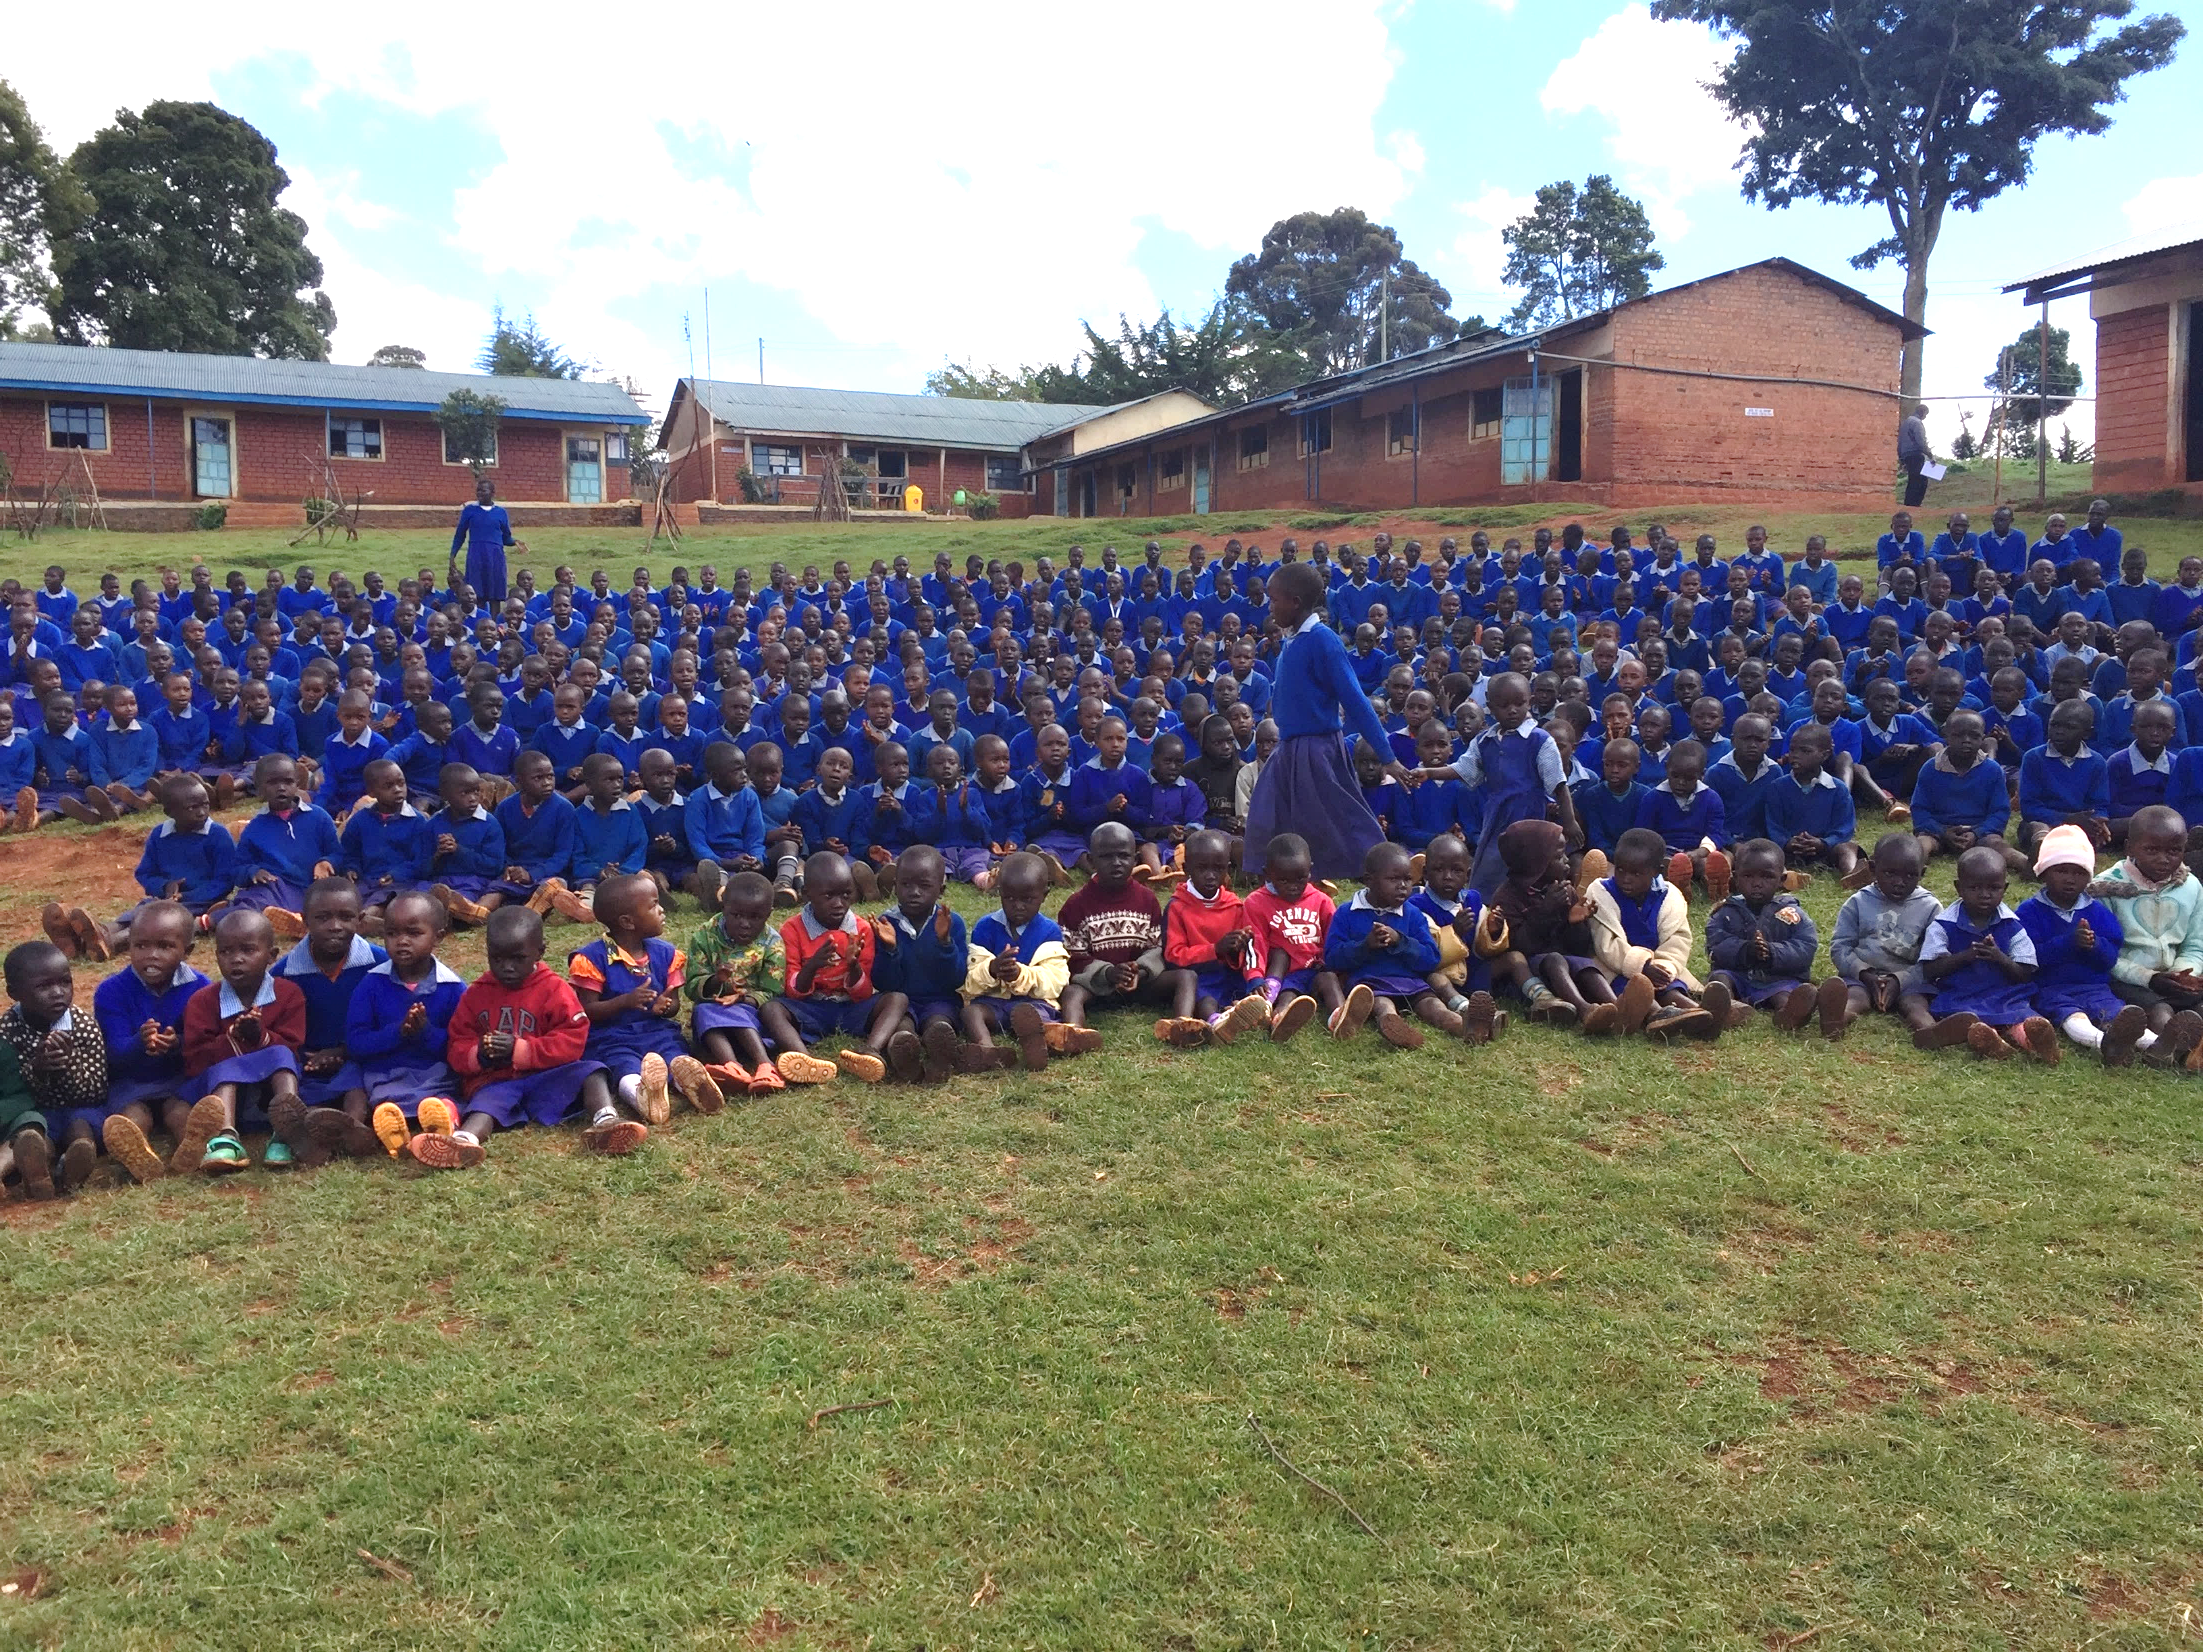 Copy of Gathering the students at Kamariny Primary School